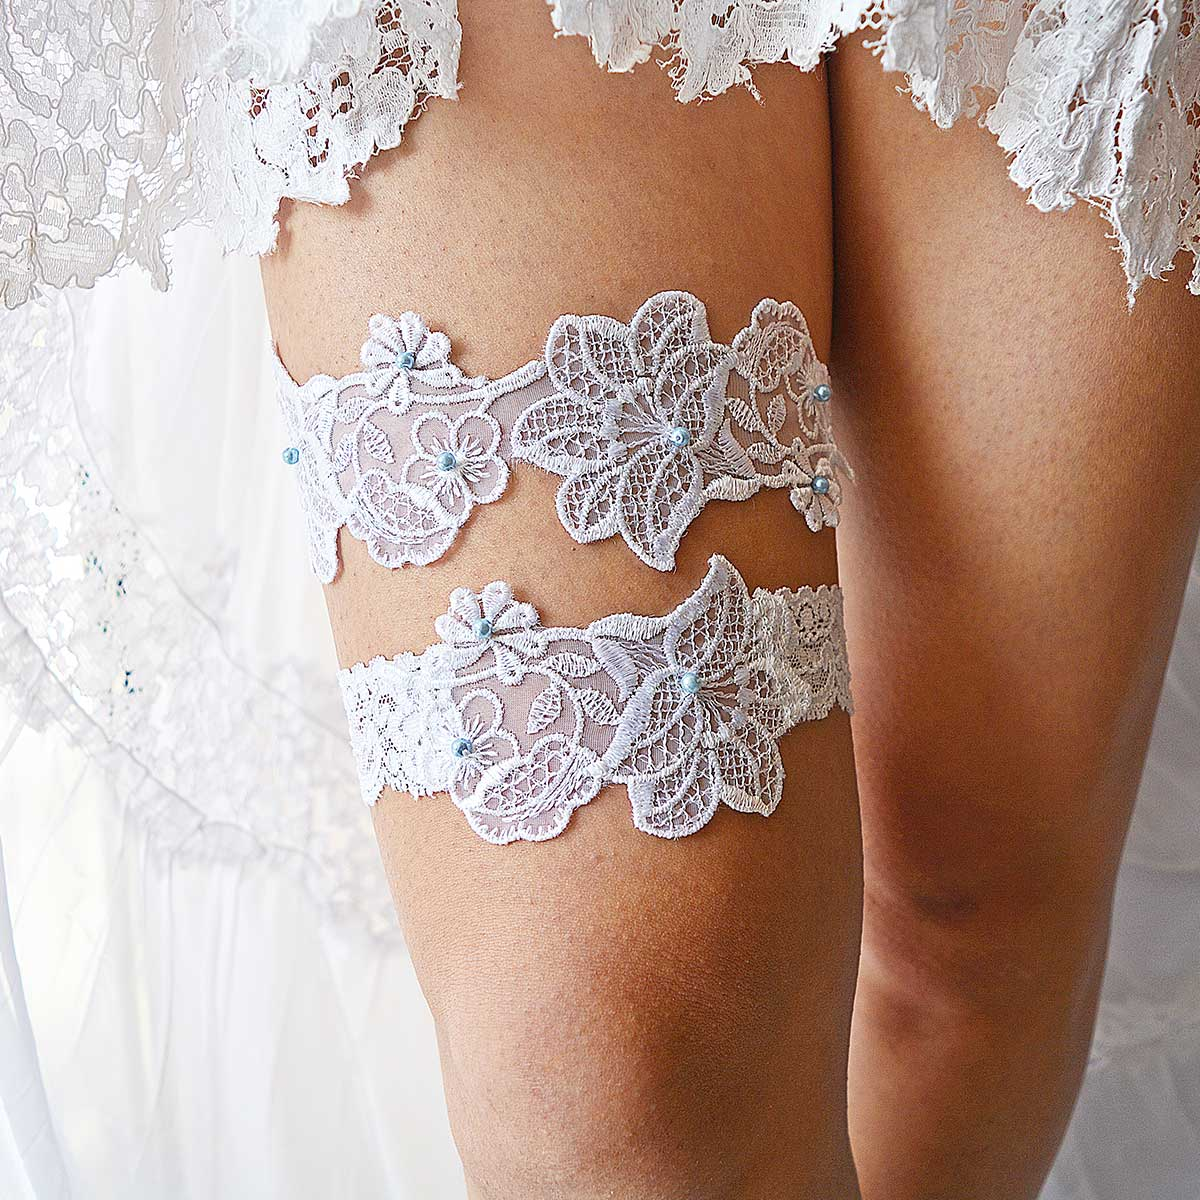 White Bridal Garter With Applique Lace And Pale Blue Pearls - Wedding Garter - SuzannaM Designs